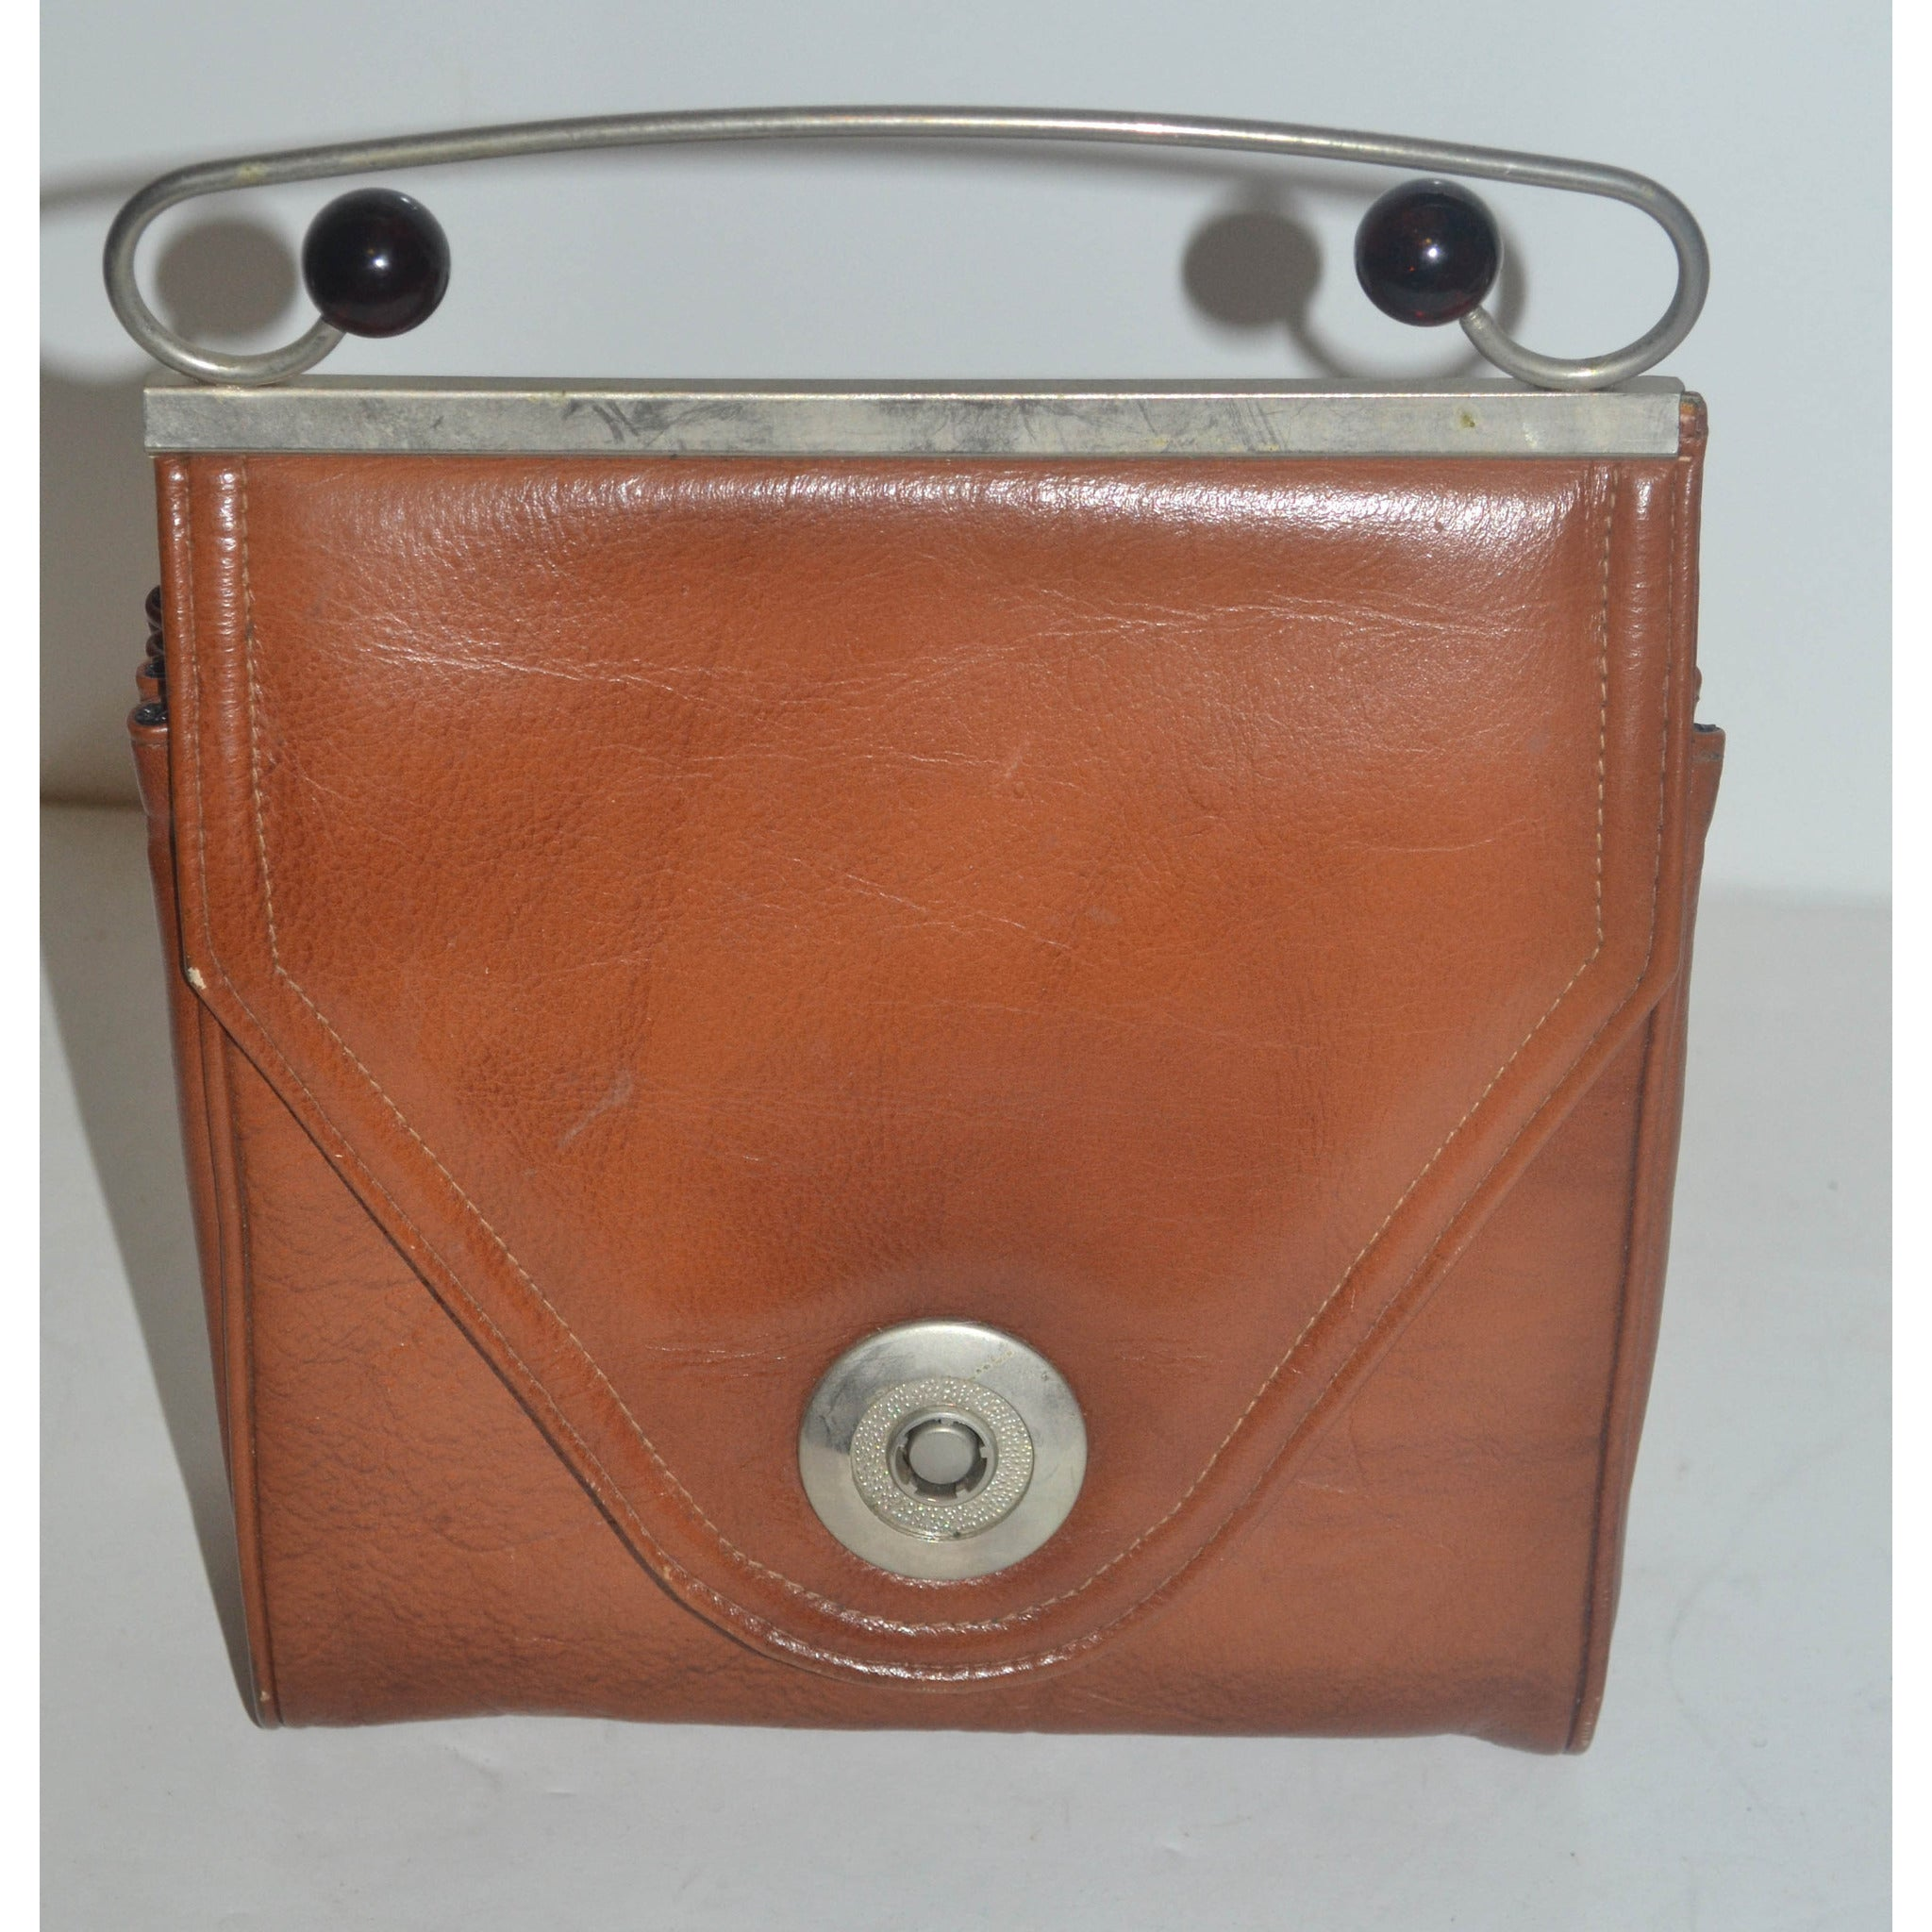 Vintage Brown Vinyl Handlebar Purse